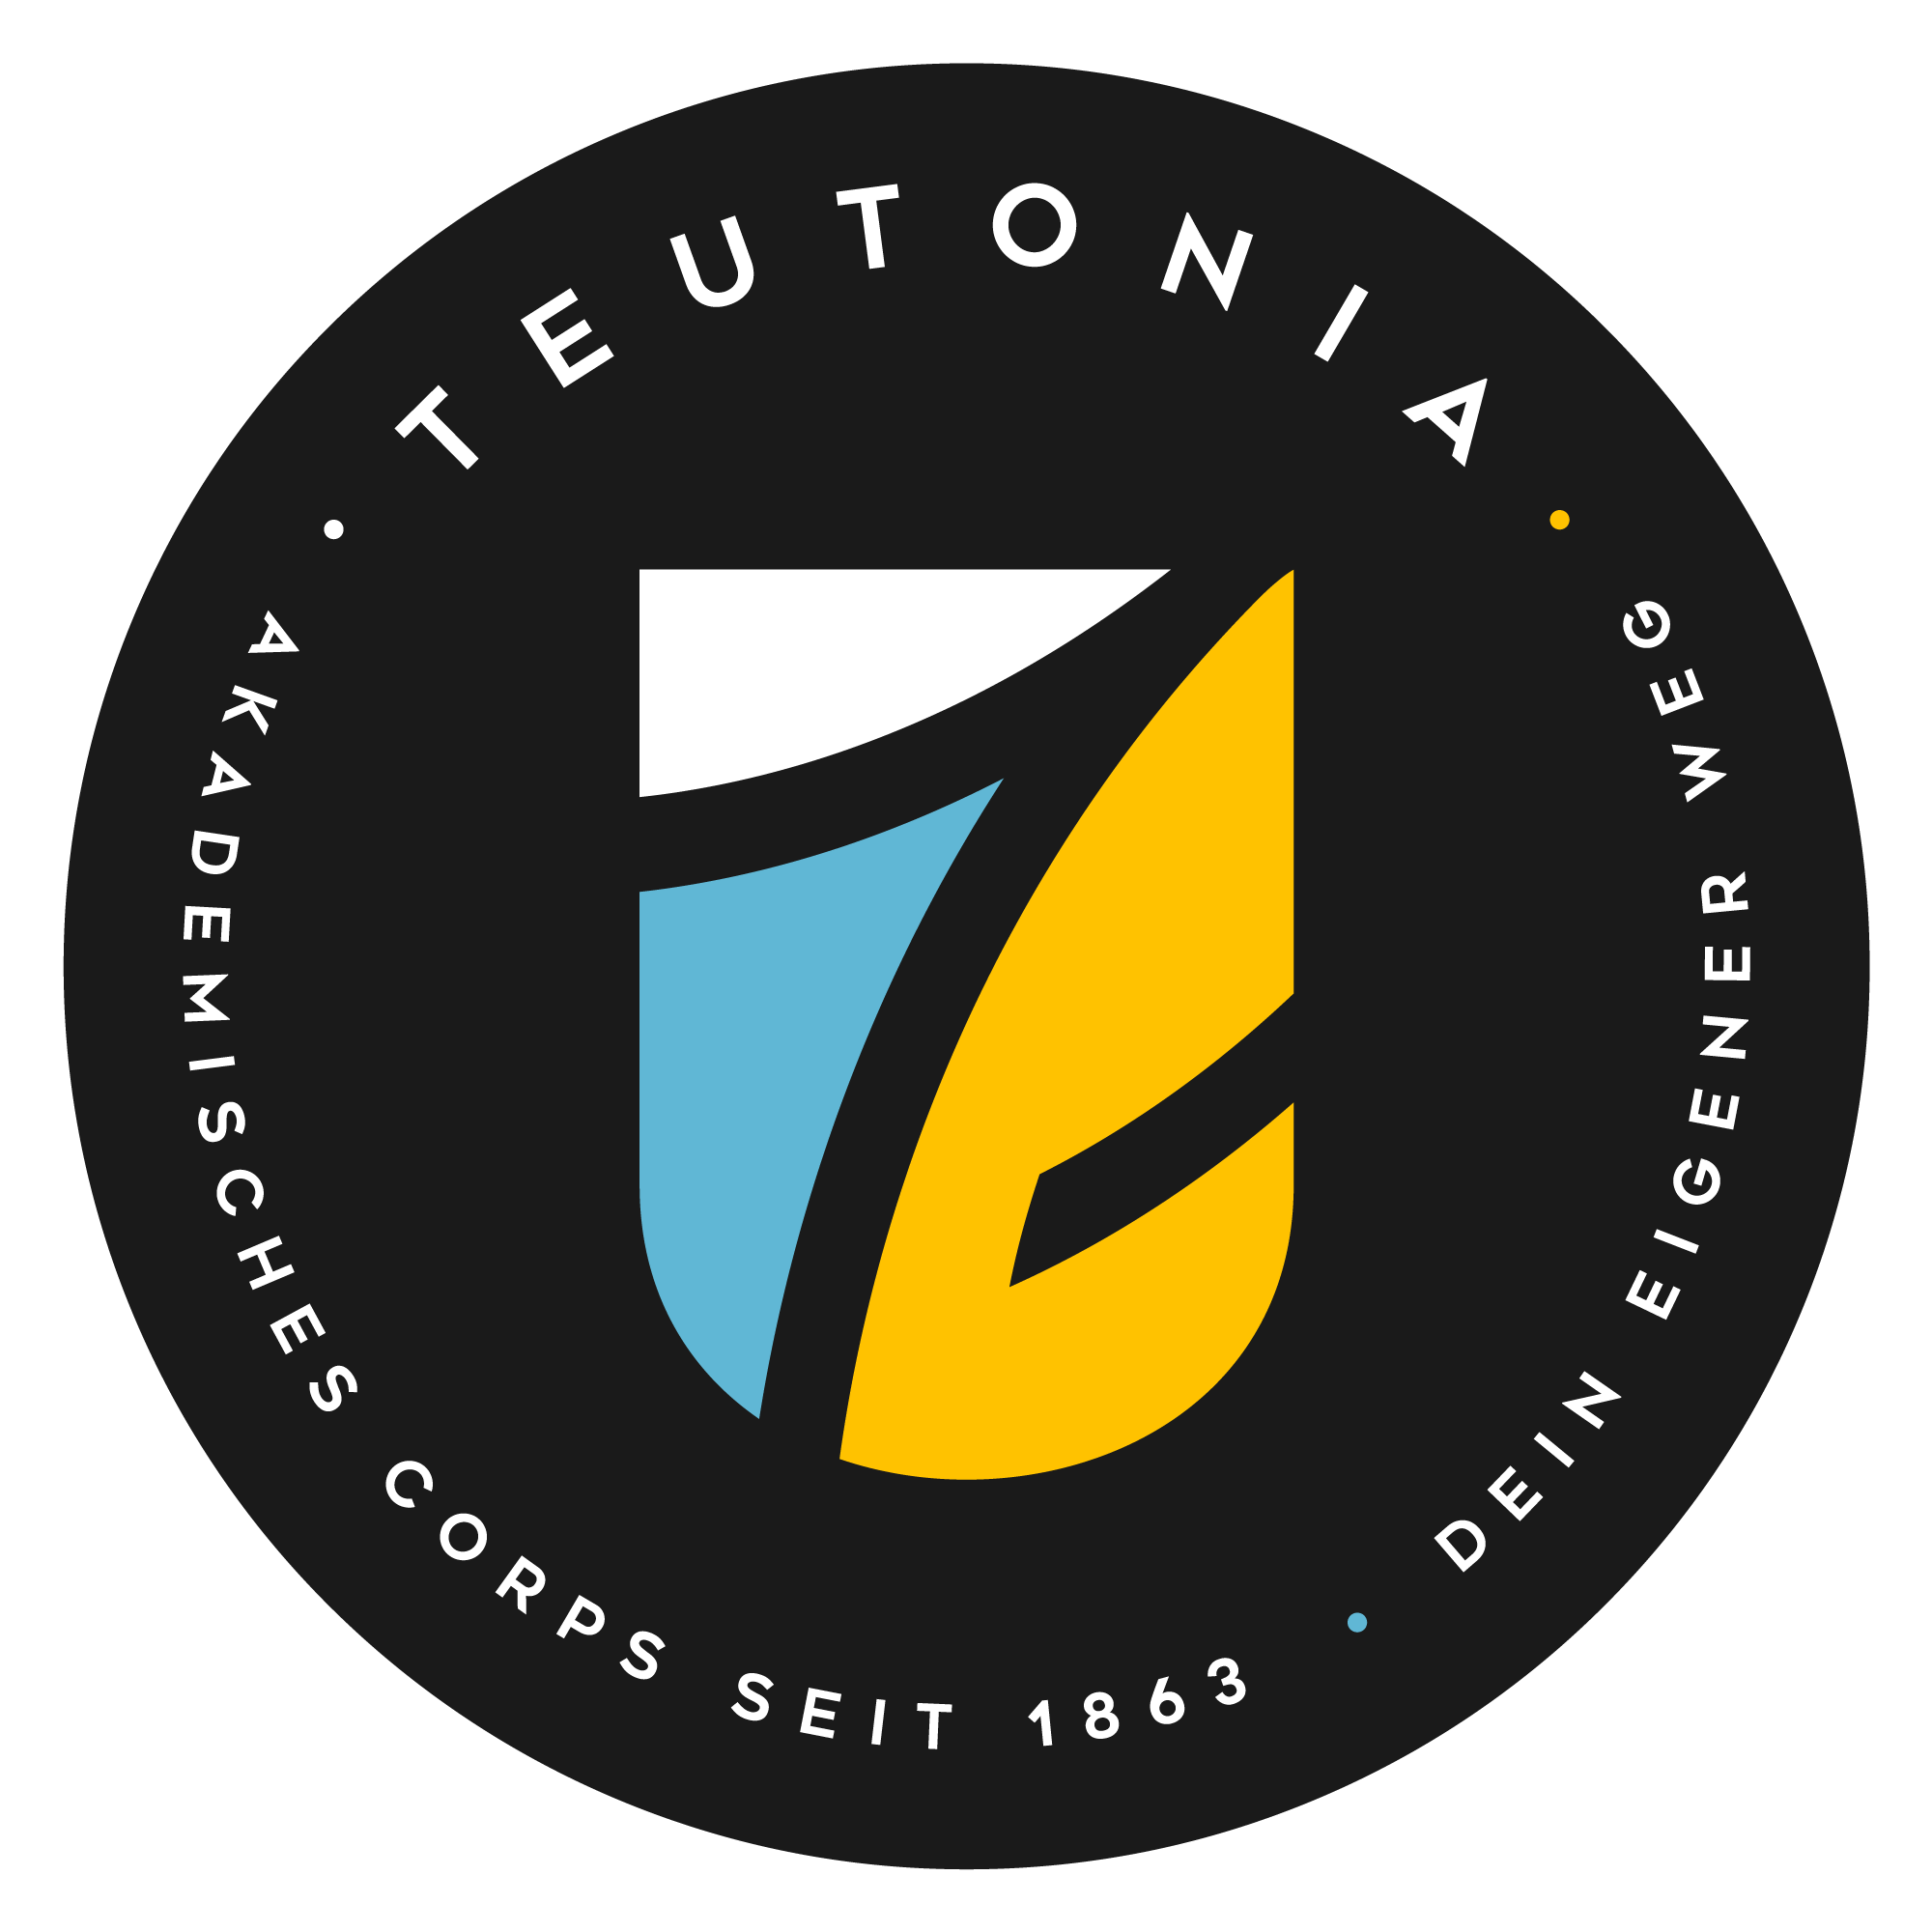 Teutonia Be You Elite Erfahrungen